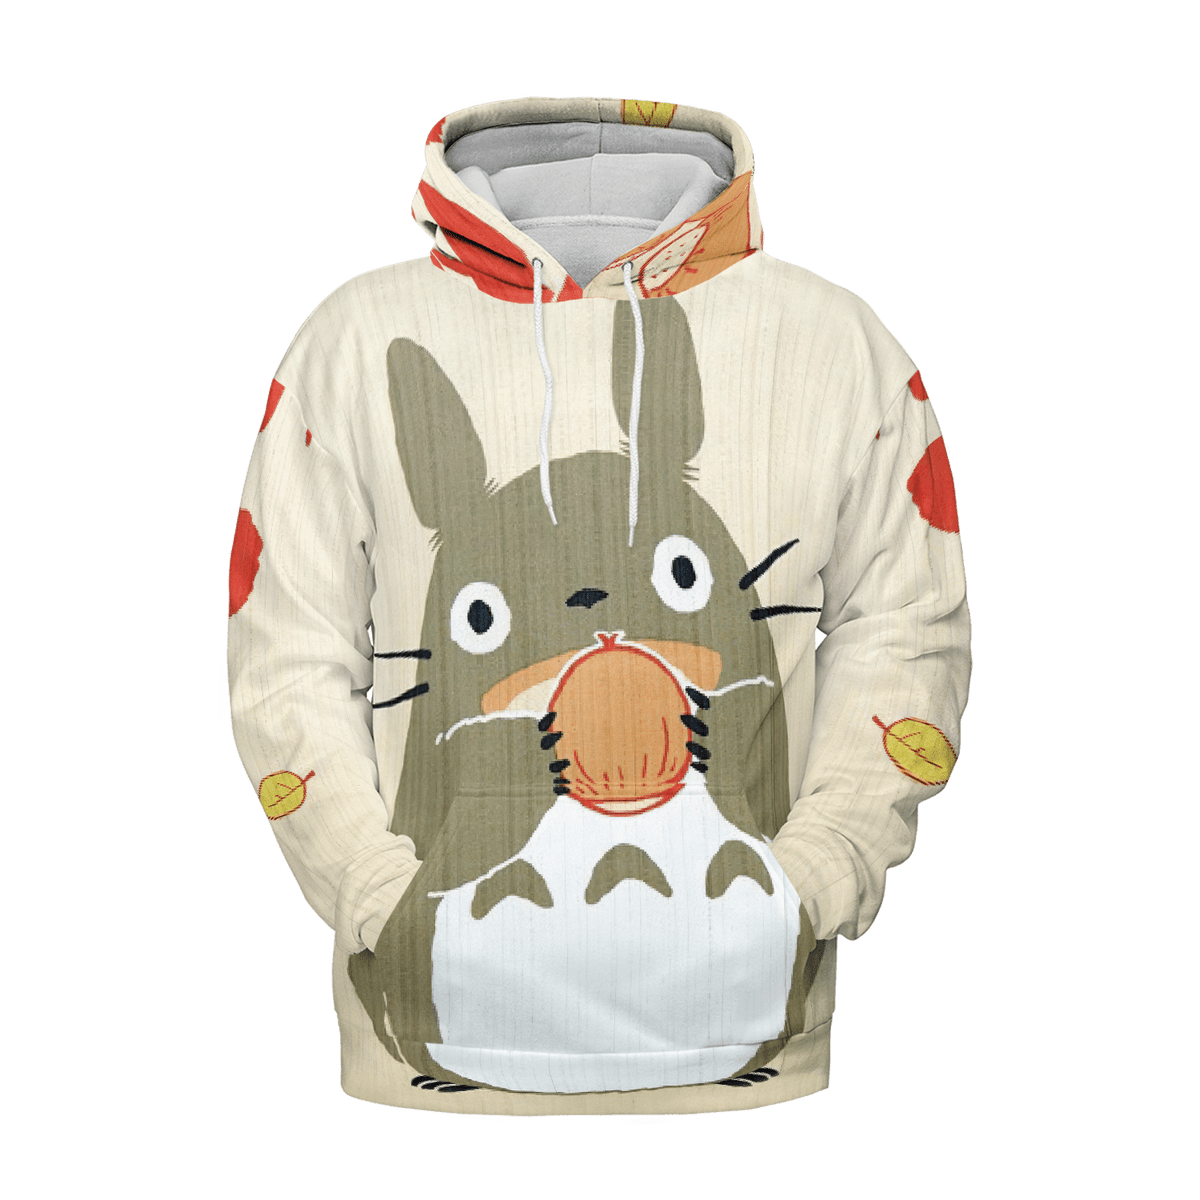 Totoro and the Chestnut 3D Hoodie